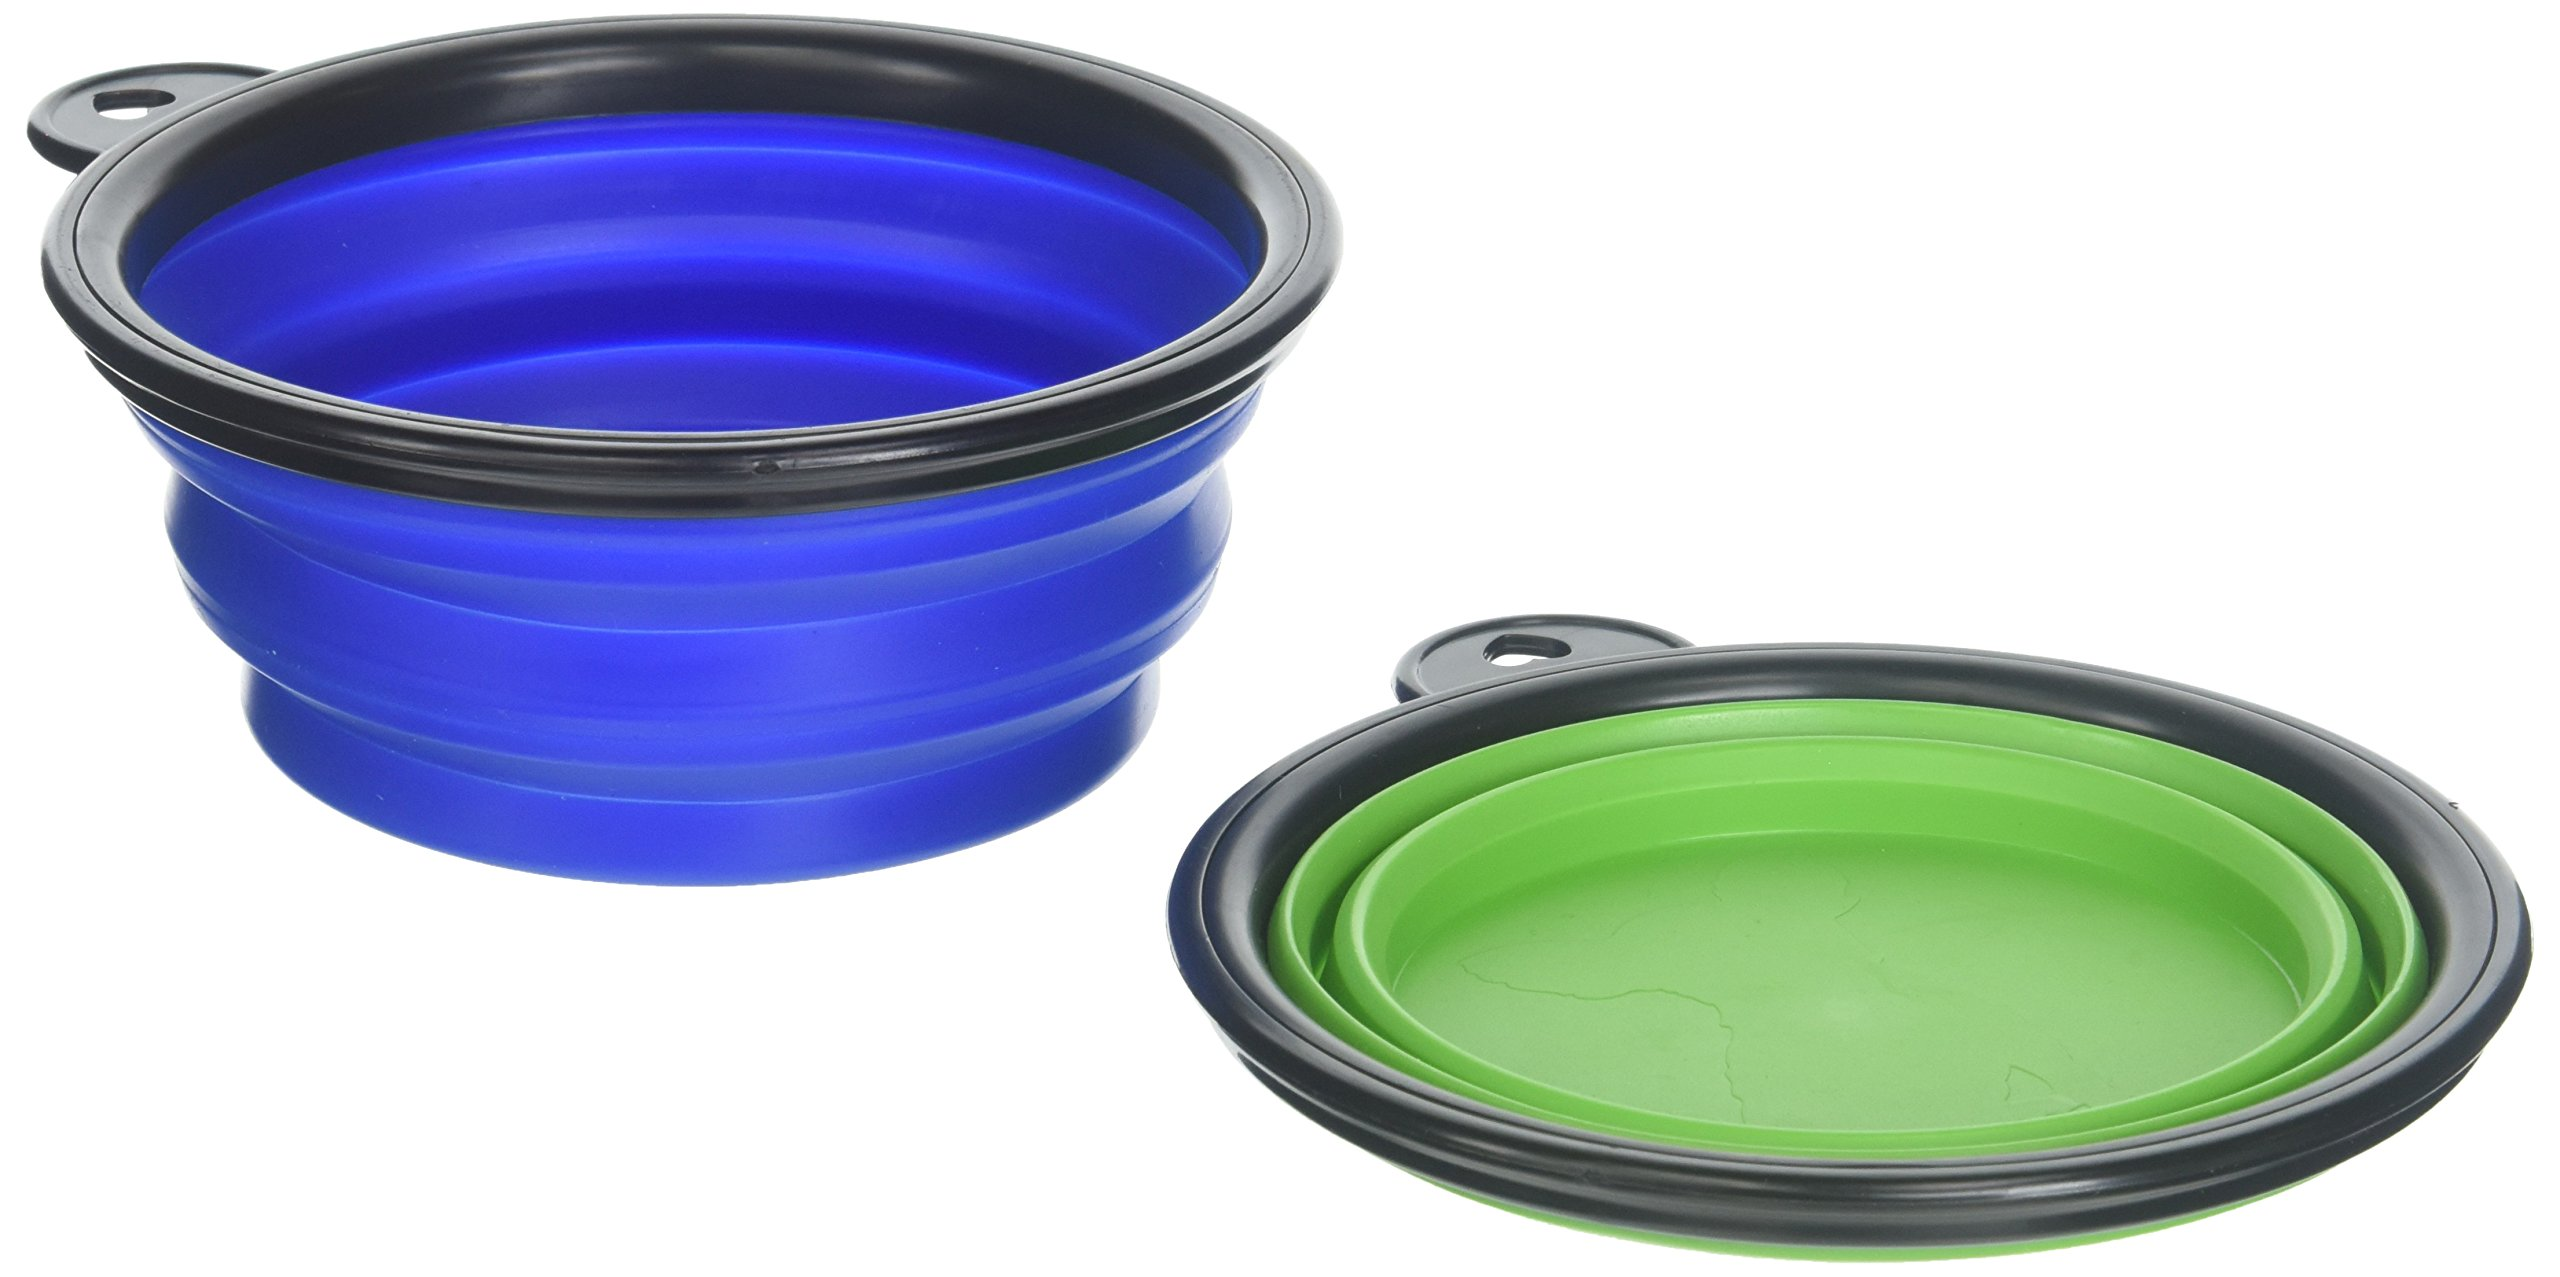 COCOPET Outdoor Pet Dog Silicone BPA Free Foldable Water Travel Bowl - 5.1 inches Retractable Travel Protable Water Cup Dish with a Metal Carabiner for Dogs & Cats